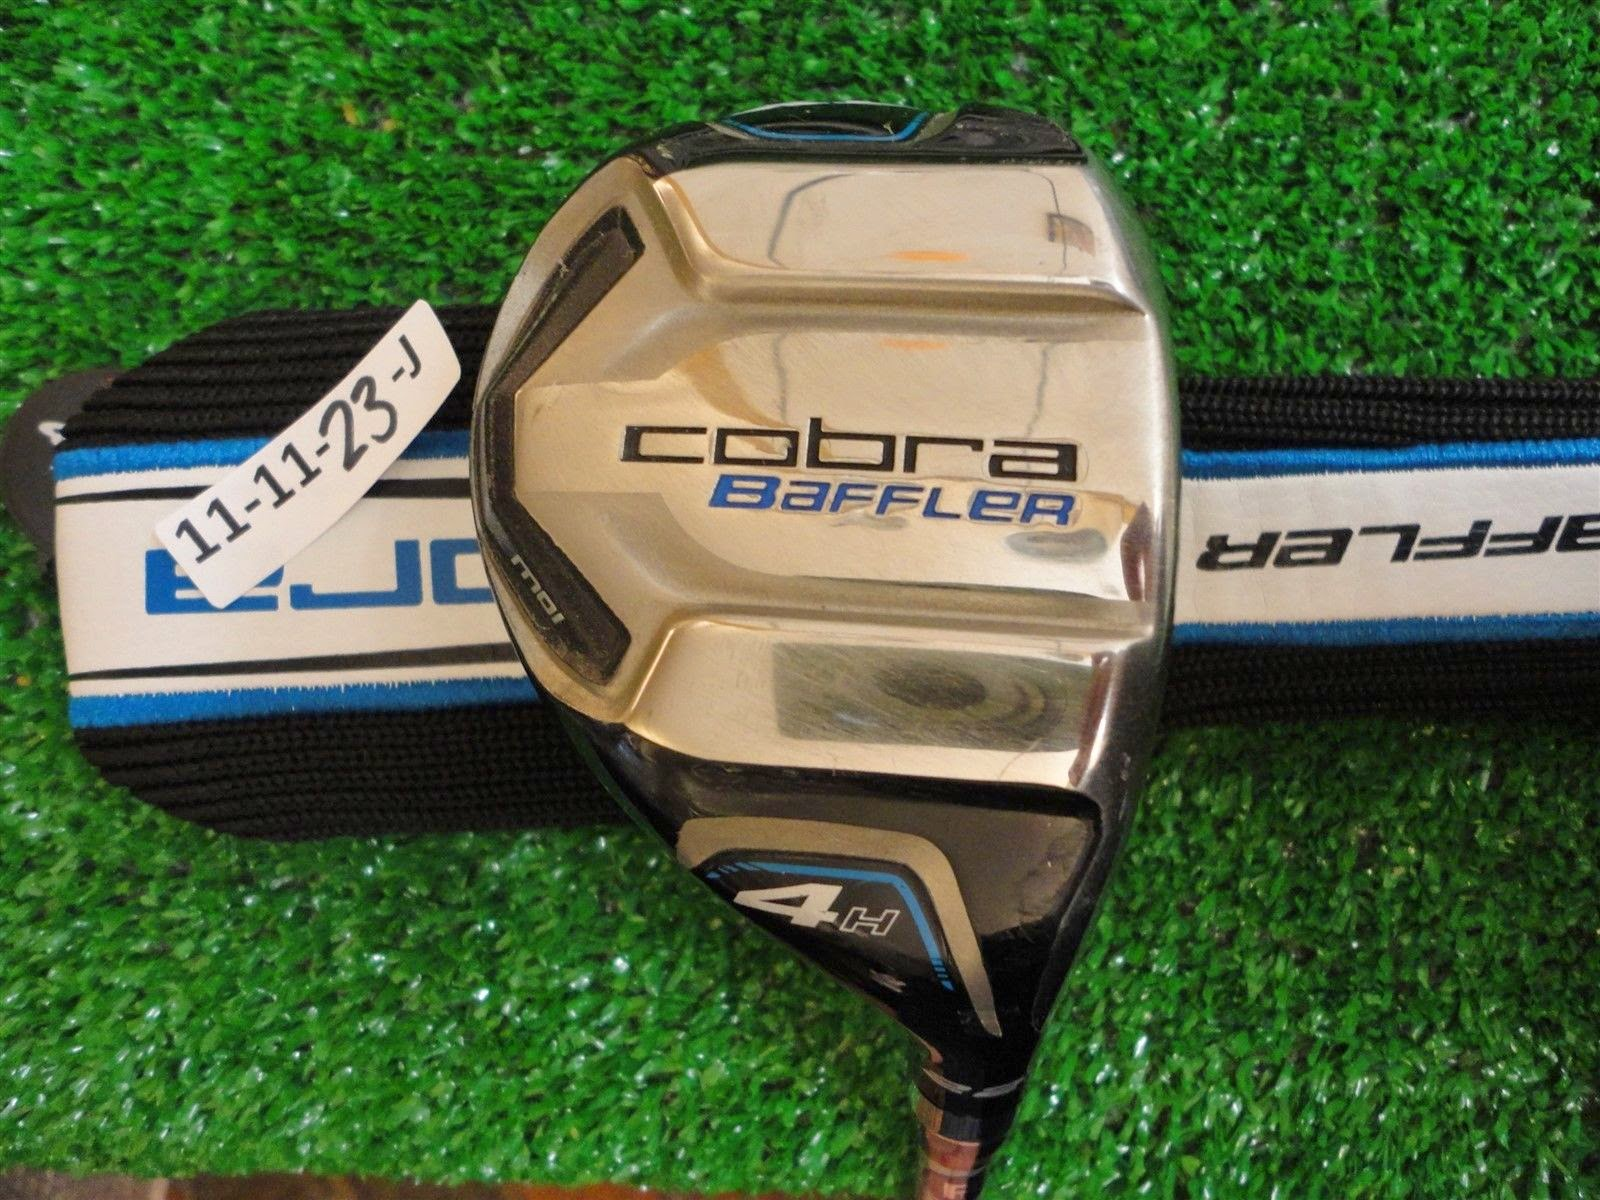 Cobra Baffler XL 22* 4 Hybrid Rescue 60g Regular Graphite with Headcover